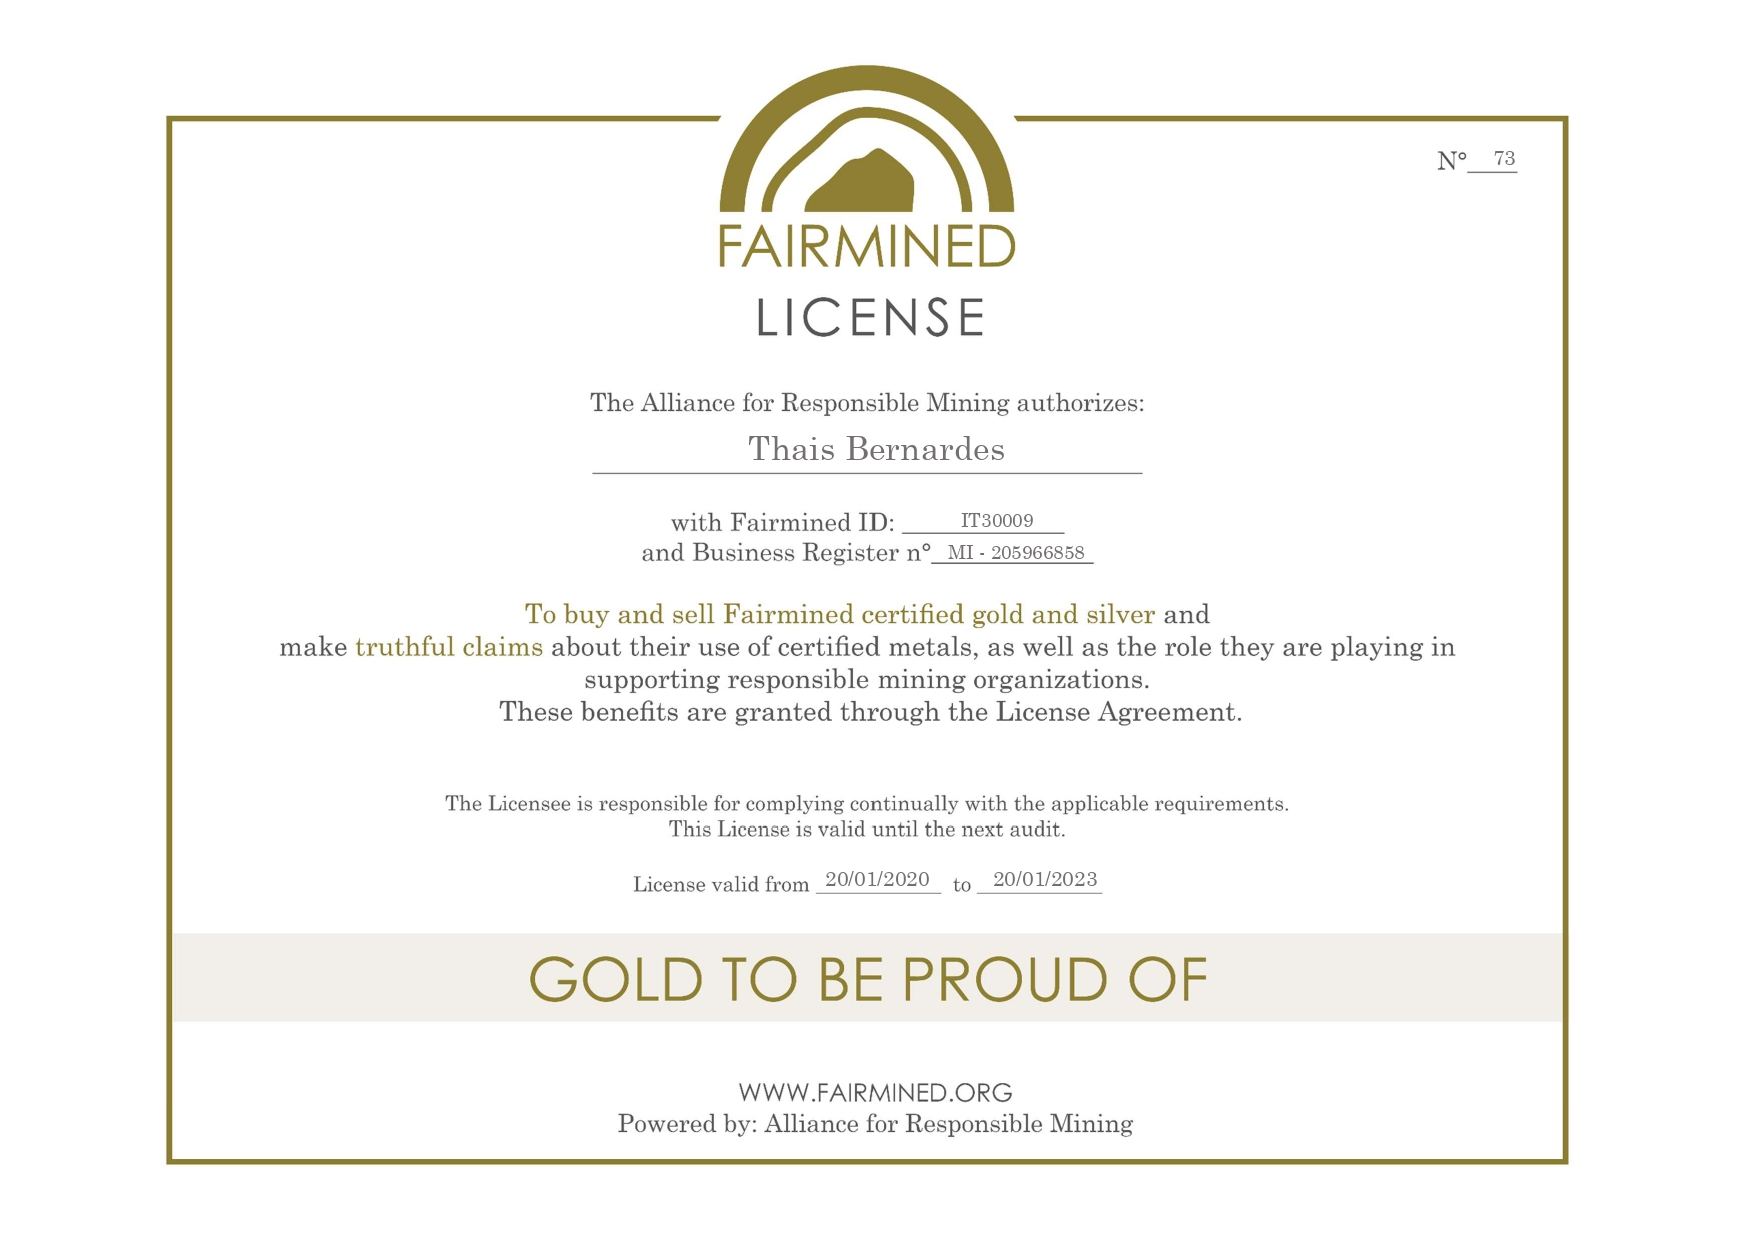 Fairmined License - Thais Bernardes